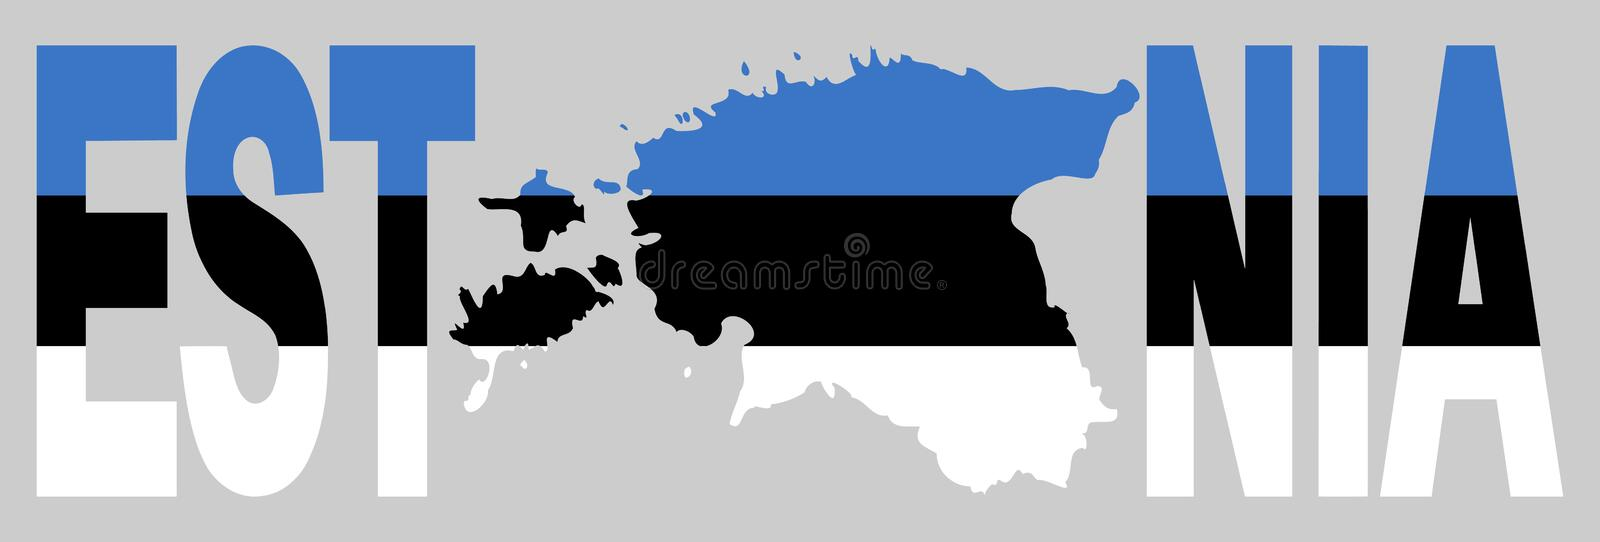 Download Estonia text with map stock vector. Image of estonian - 5471940